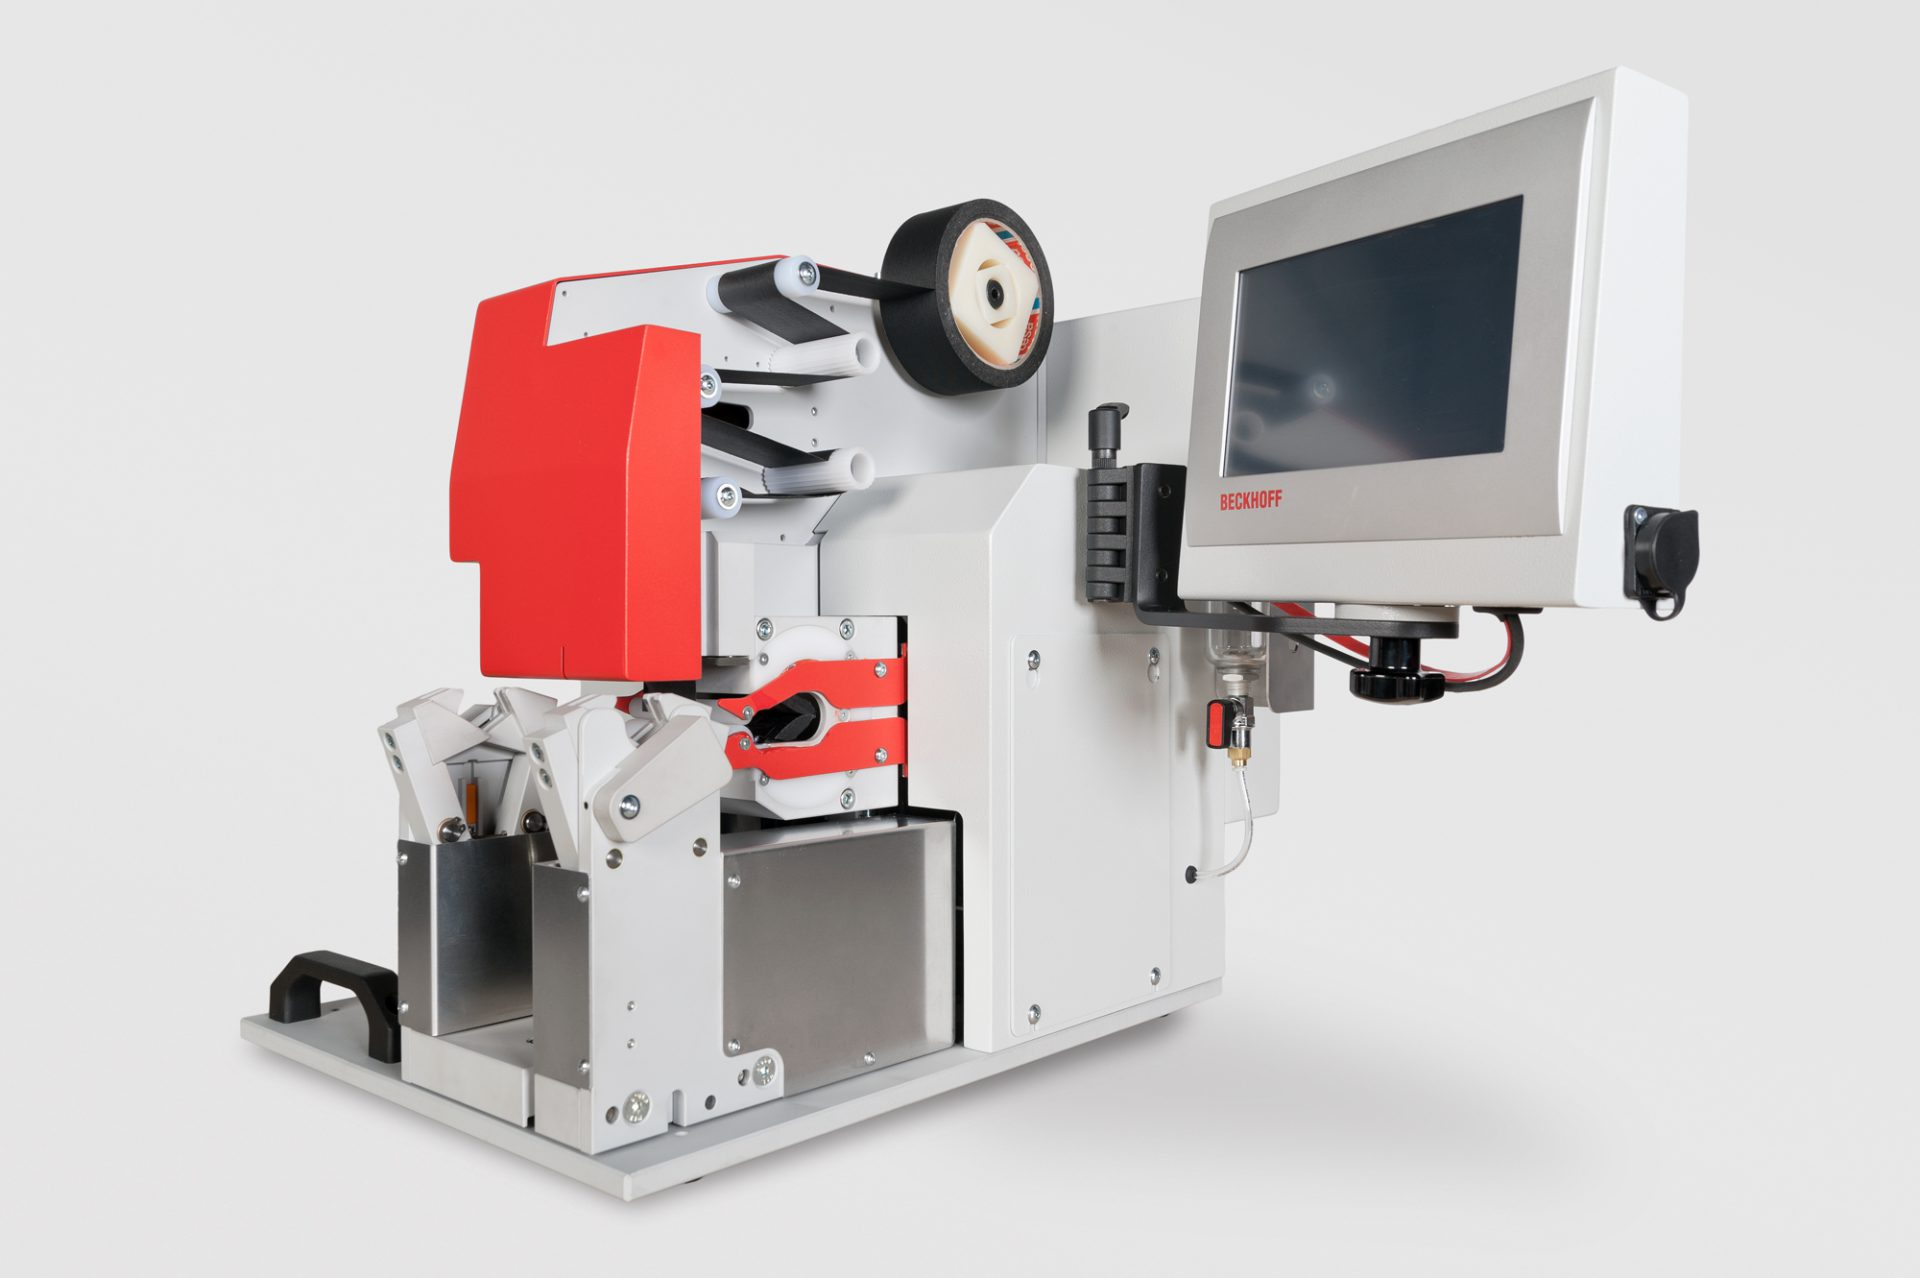 BM 50 spot taping machine